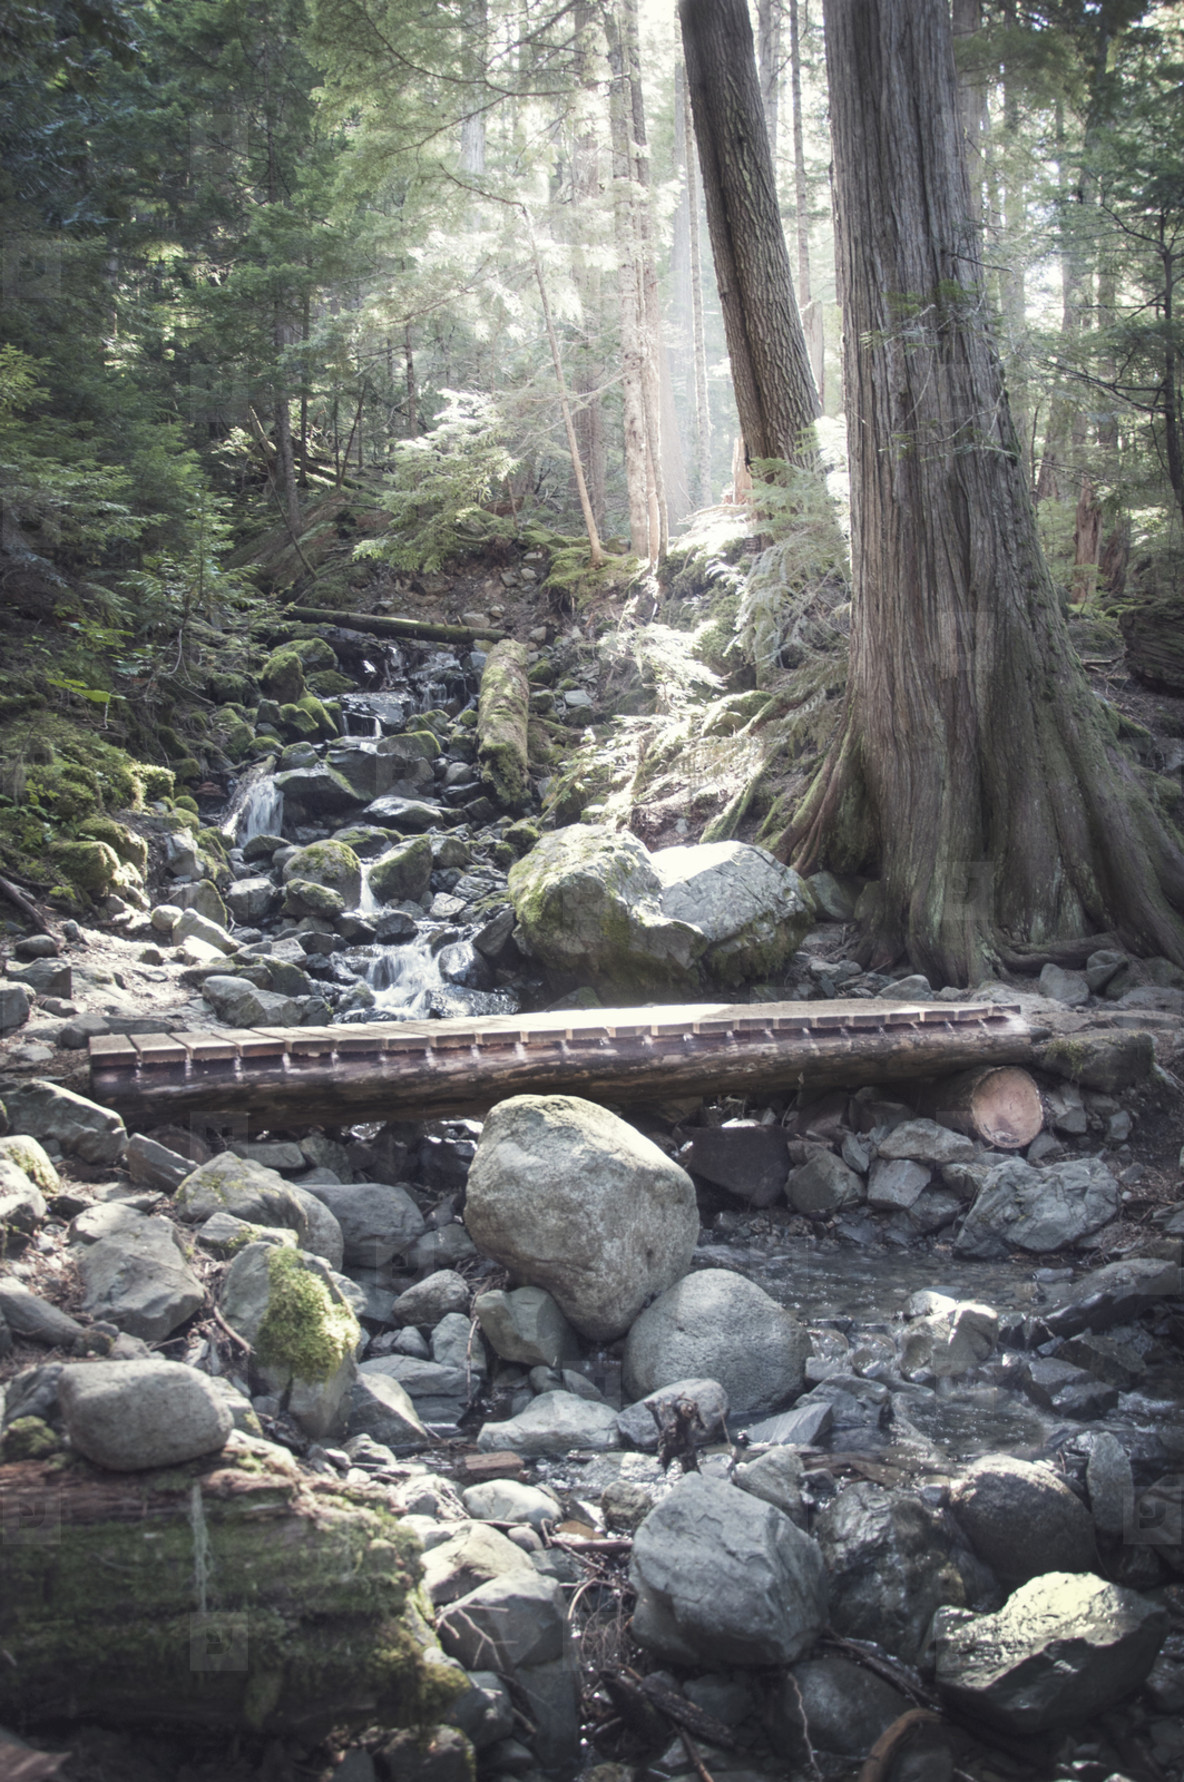 Bridge in woods of Northern Cali